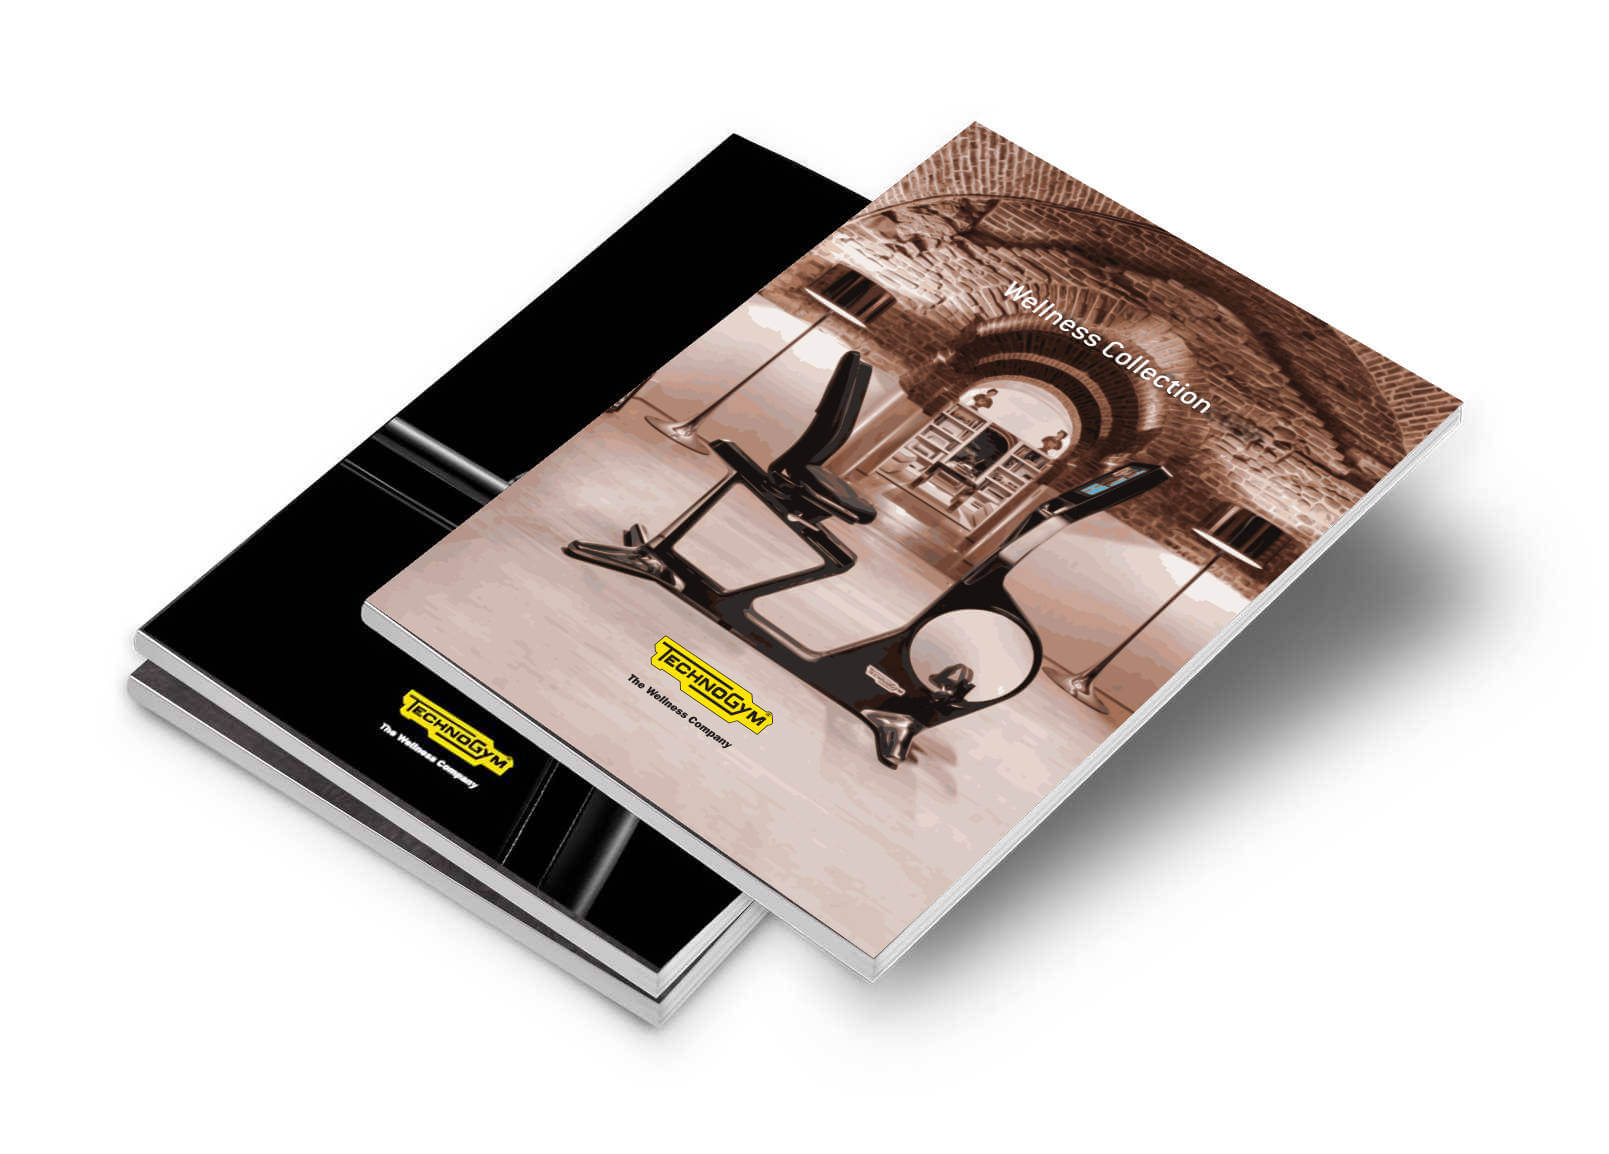 Technogym catalogue